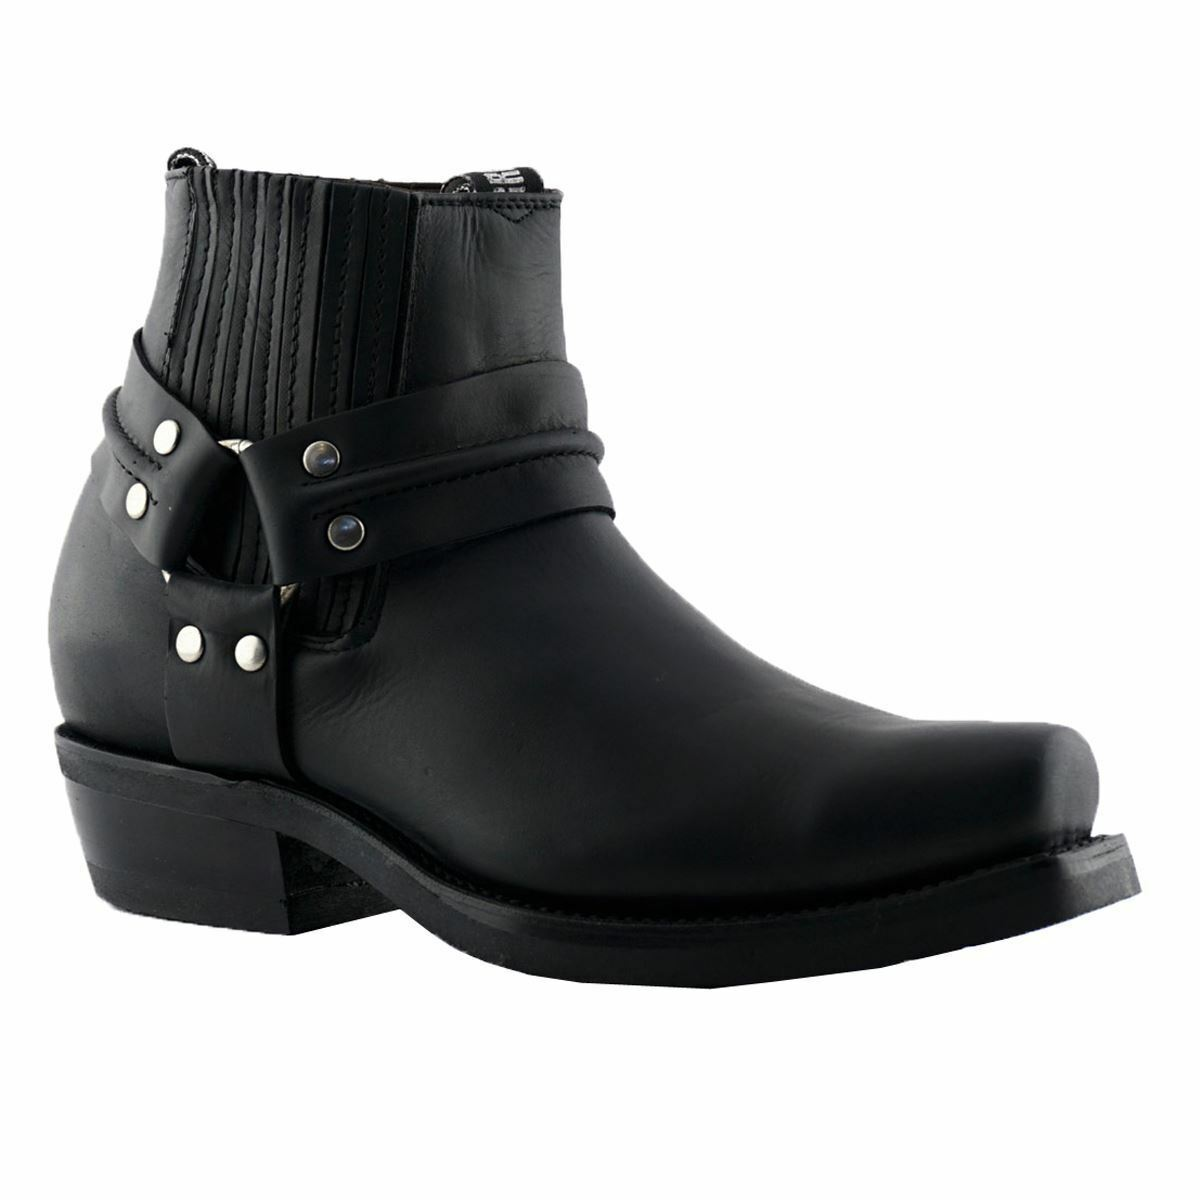 New Grinders Eagle Lo Black Unisex Leather Boot Cowboy Western Bikers High Boots